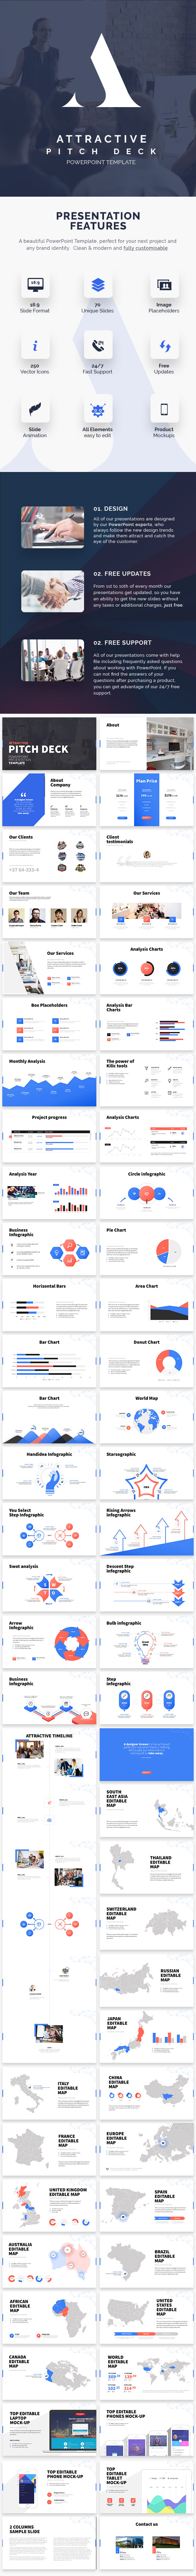 Attractive Pitch Deck - PowerPoint Presentation - Business PowerPoint Templates